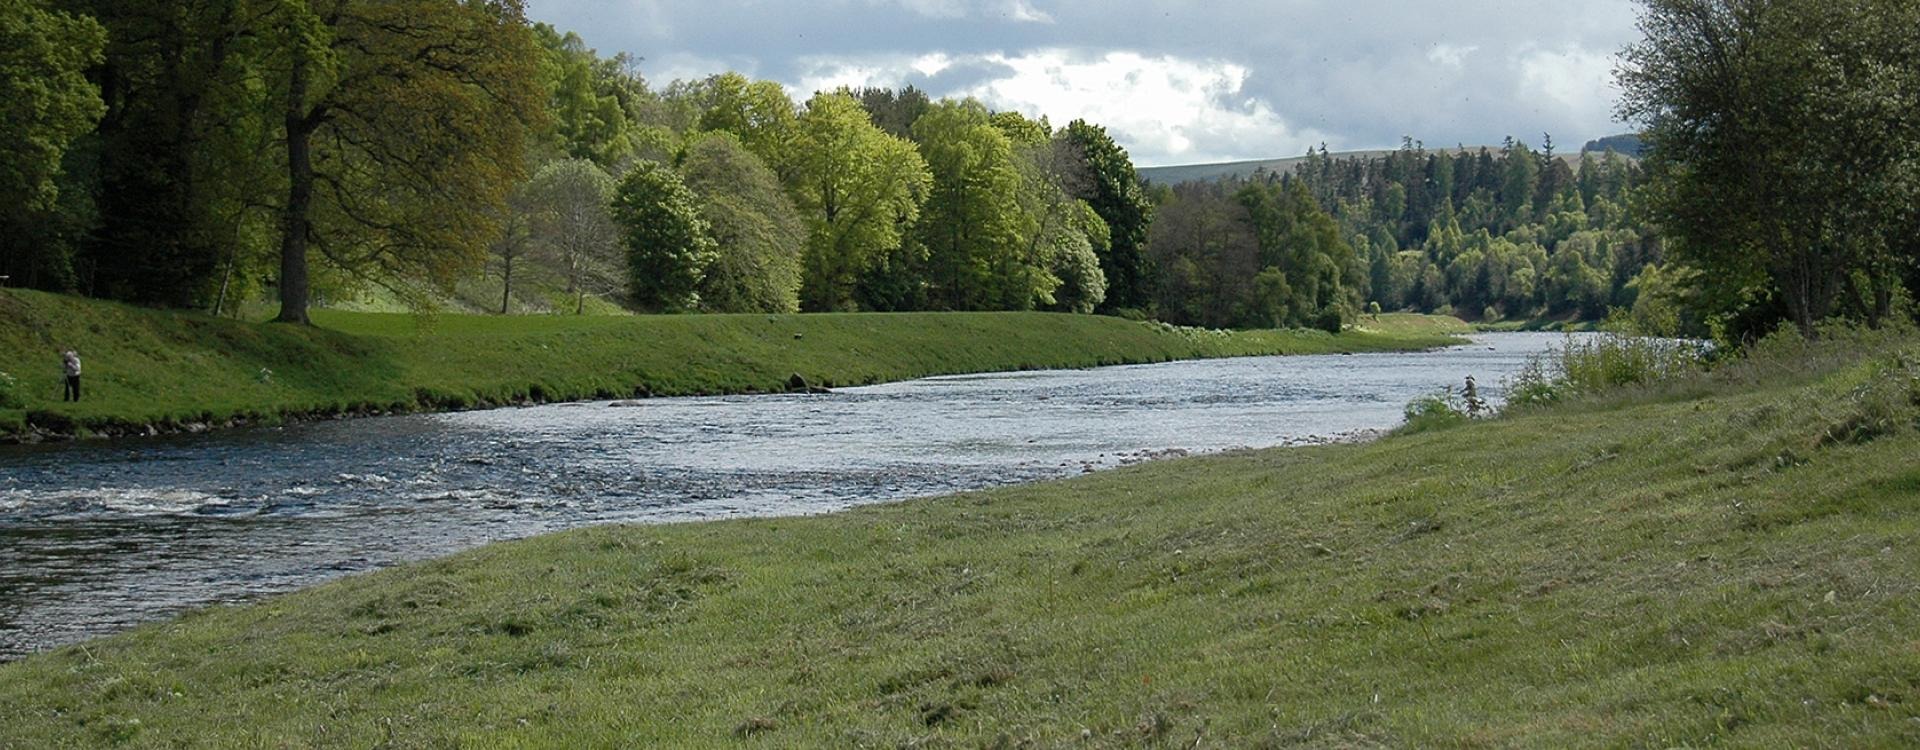 Salmon Fishing on the River Dee